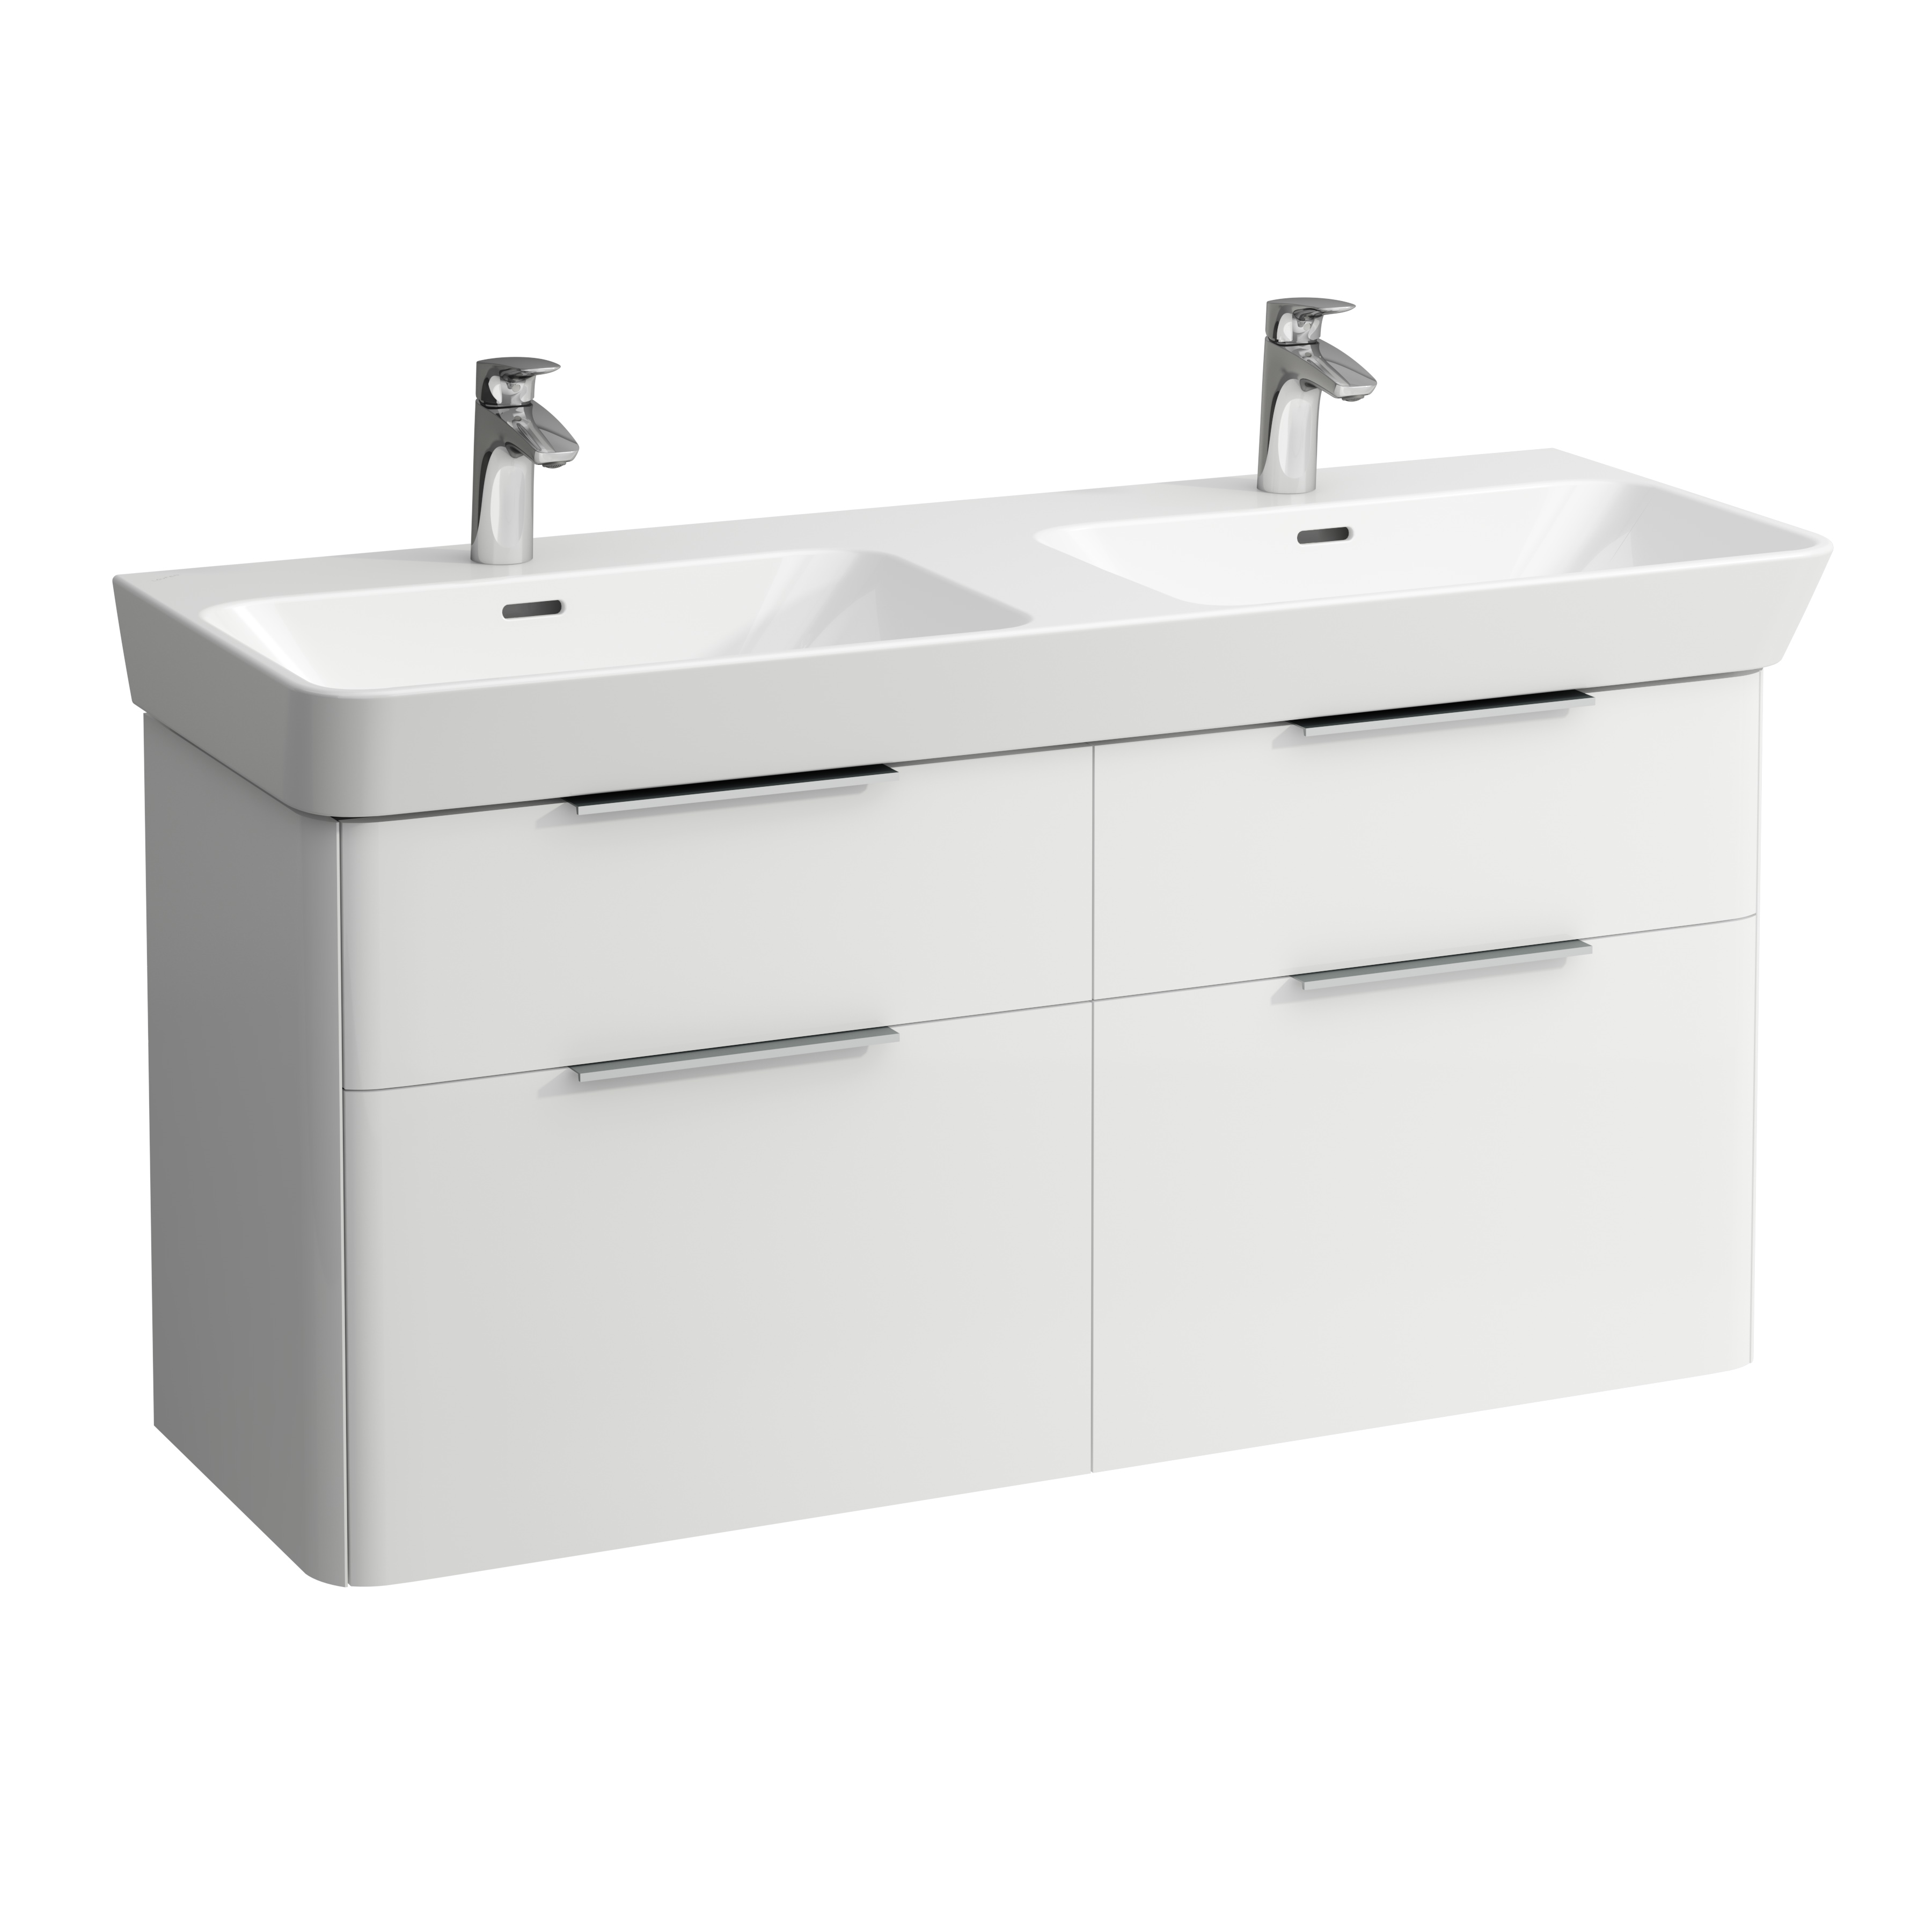 click on Vanity Unit with Four Drawers image to enlarge